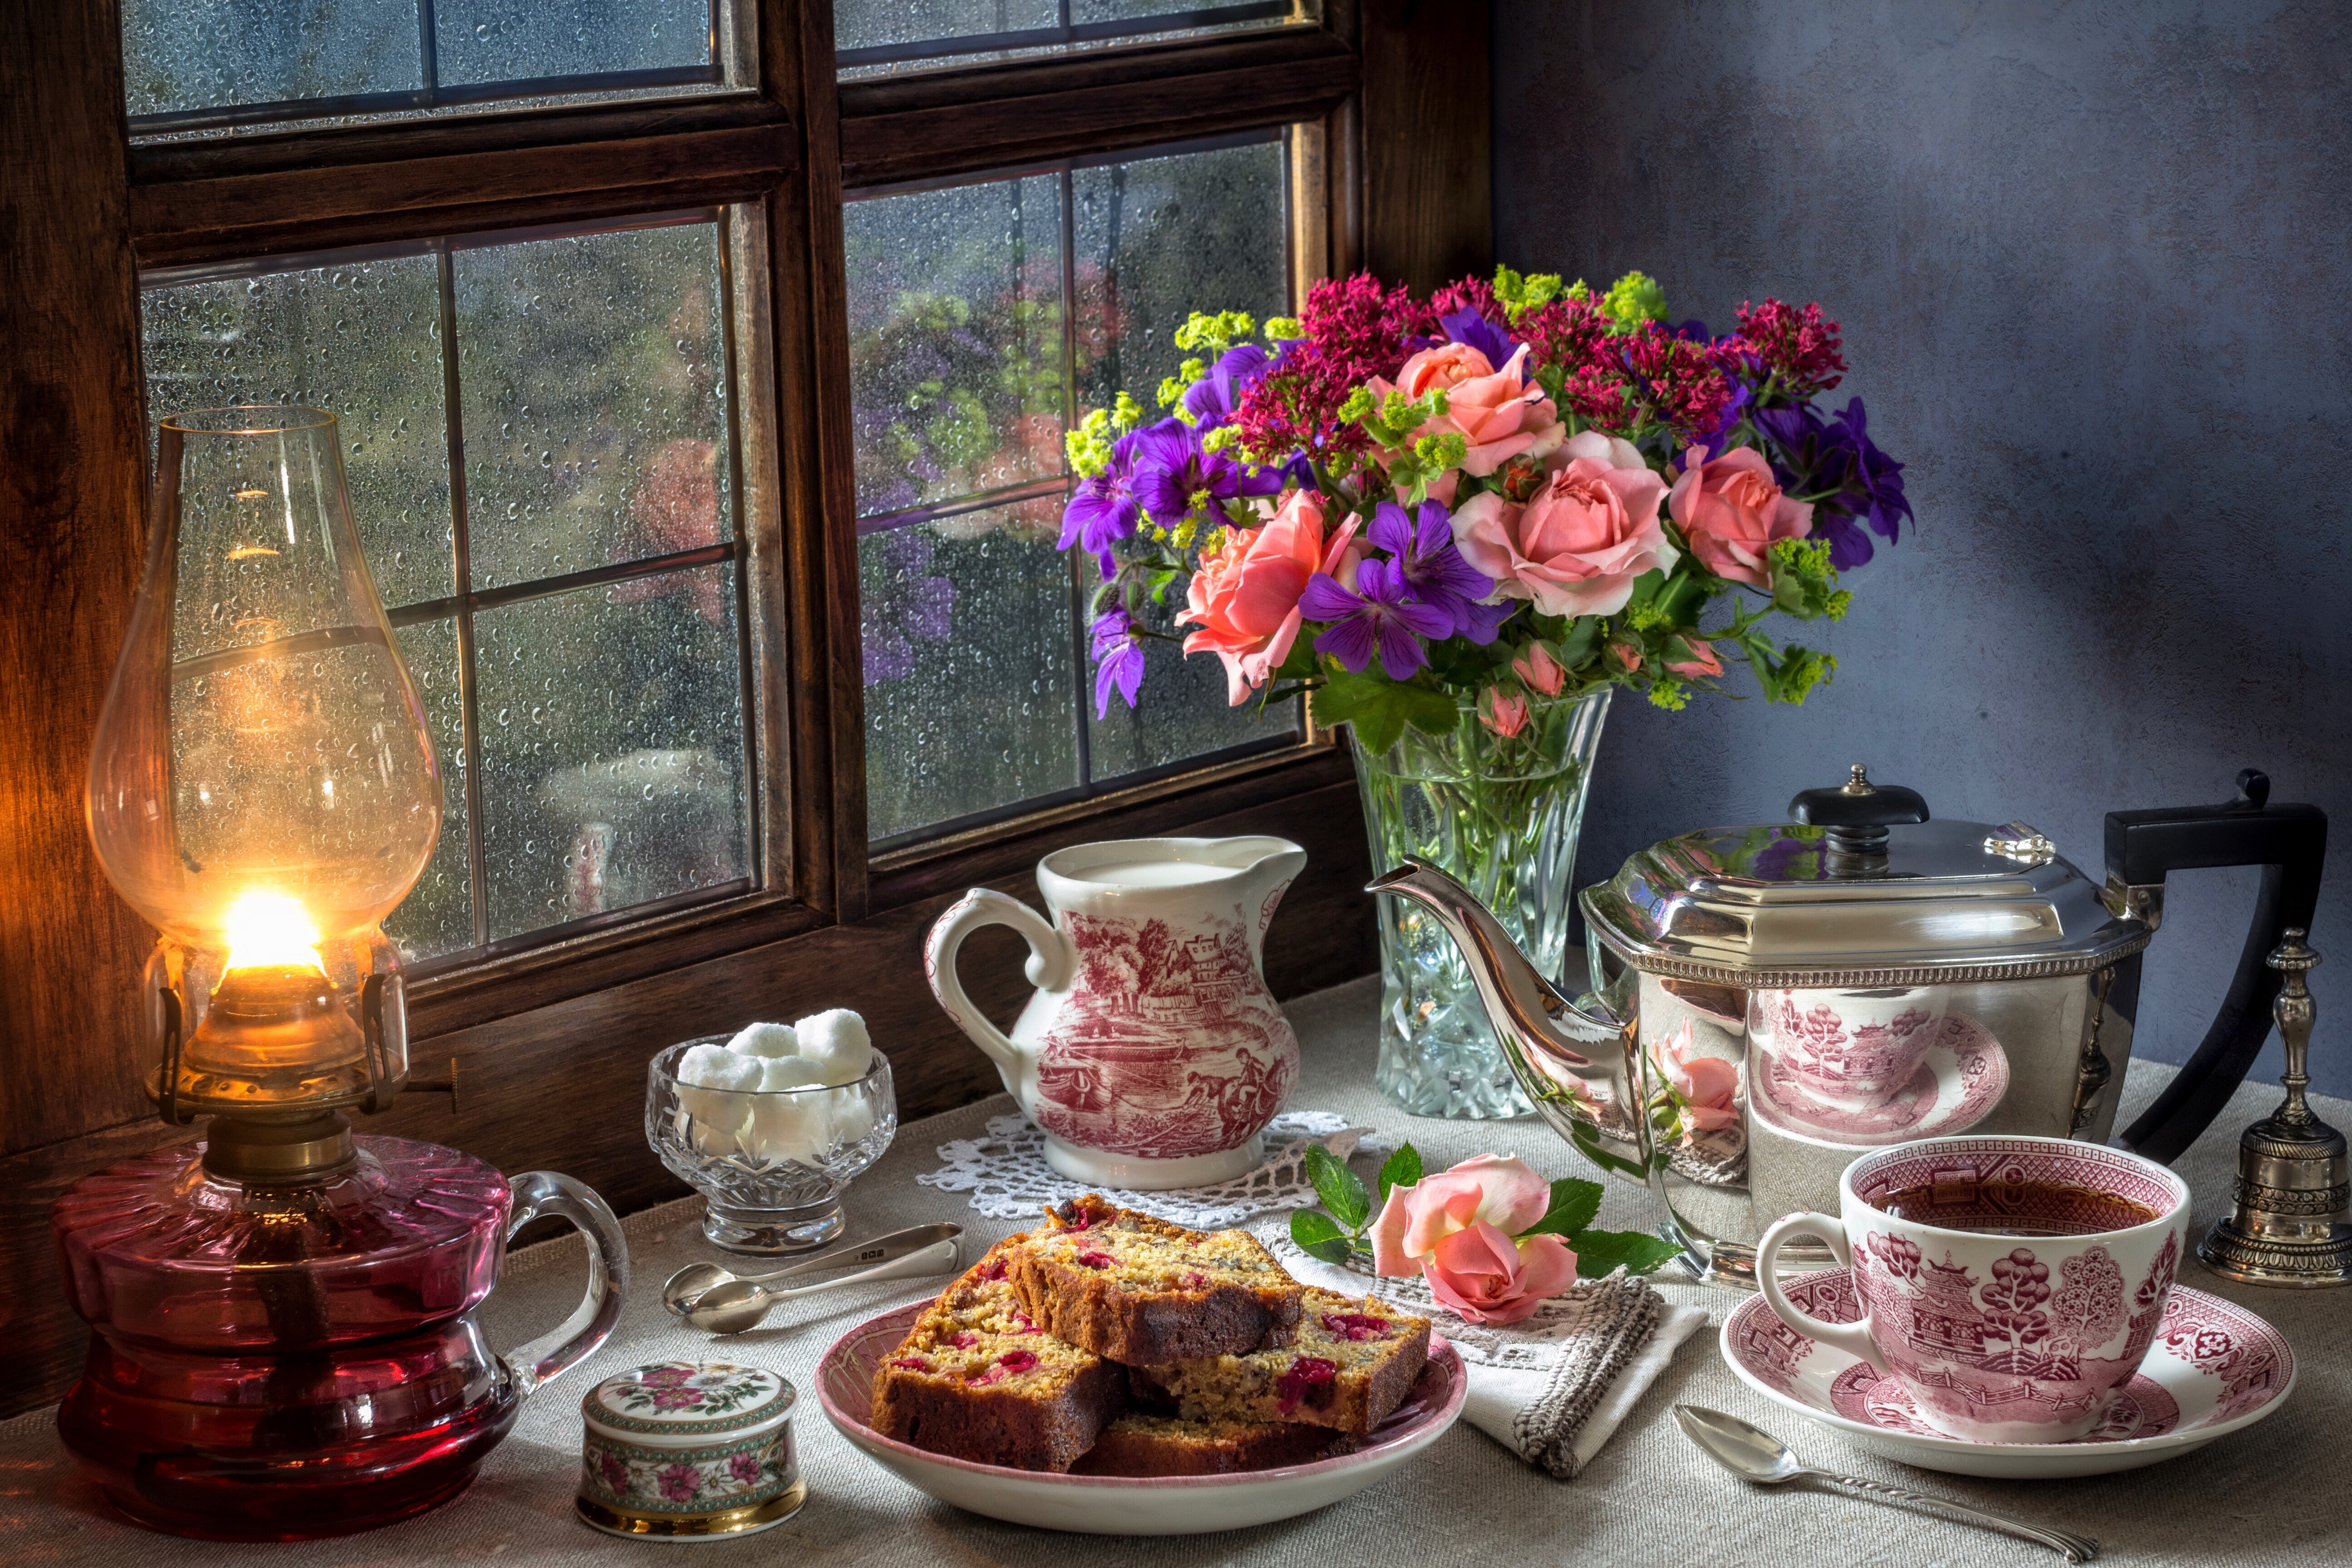 Still-life_Bouquets_Roses_Kettle_Tea_Pound_Cake_525377_5184x3456.jpg